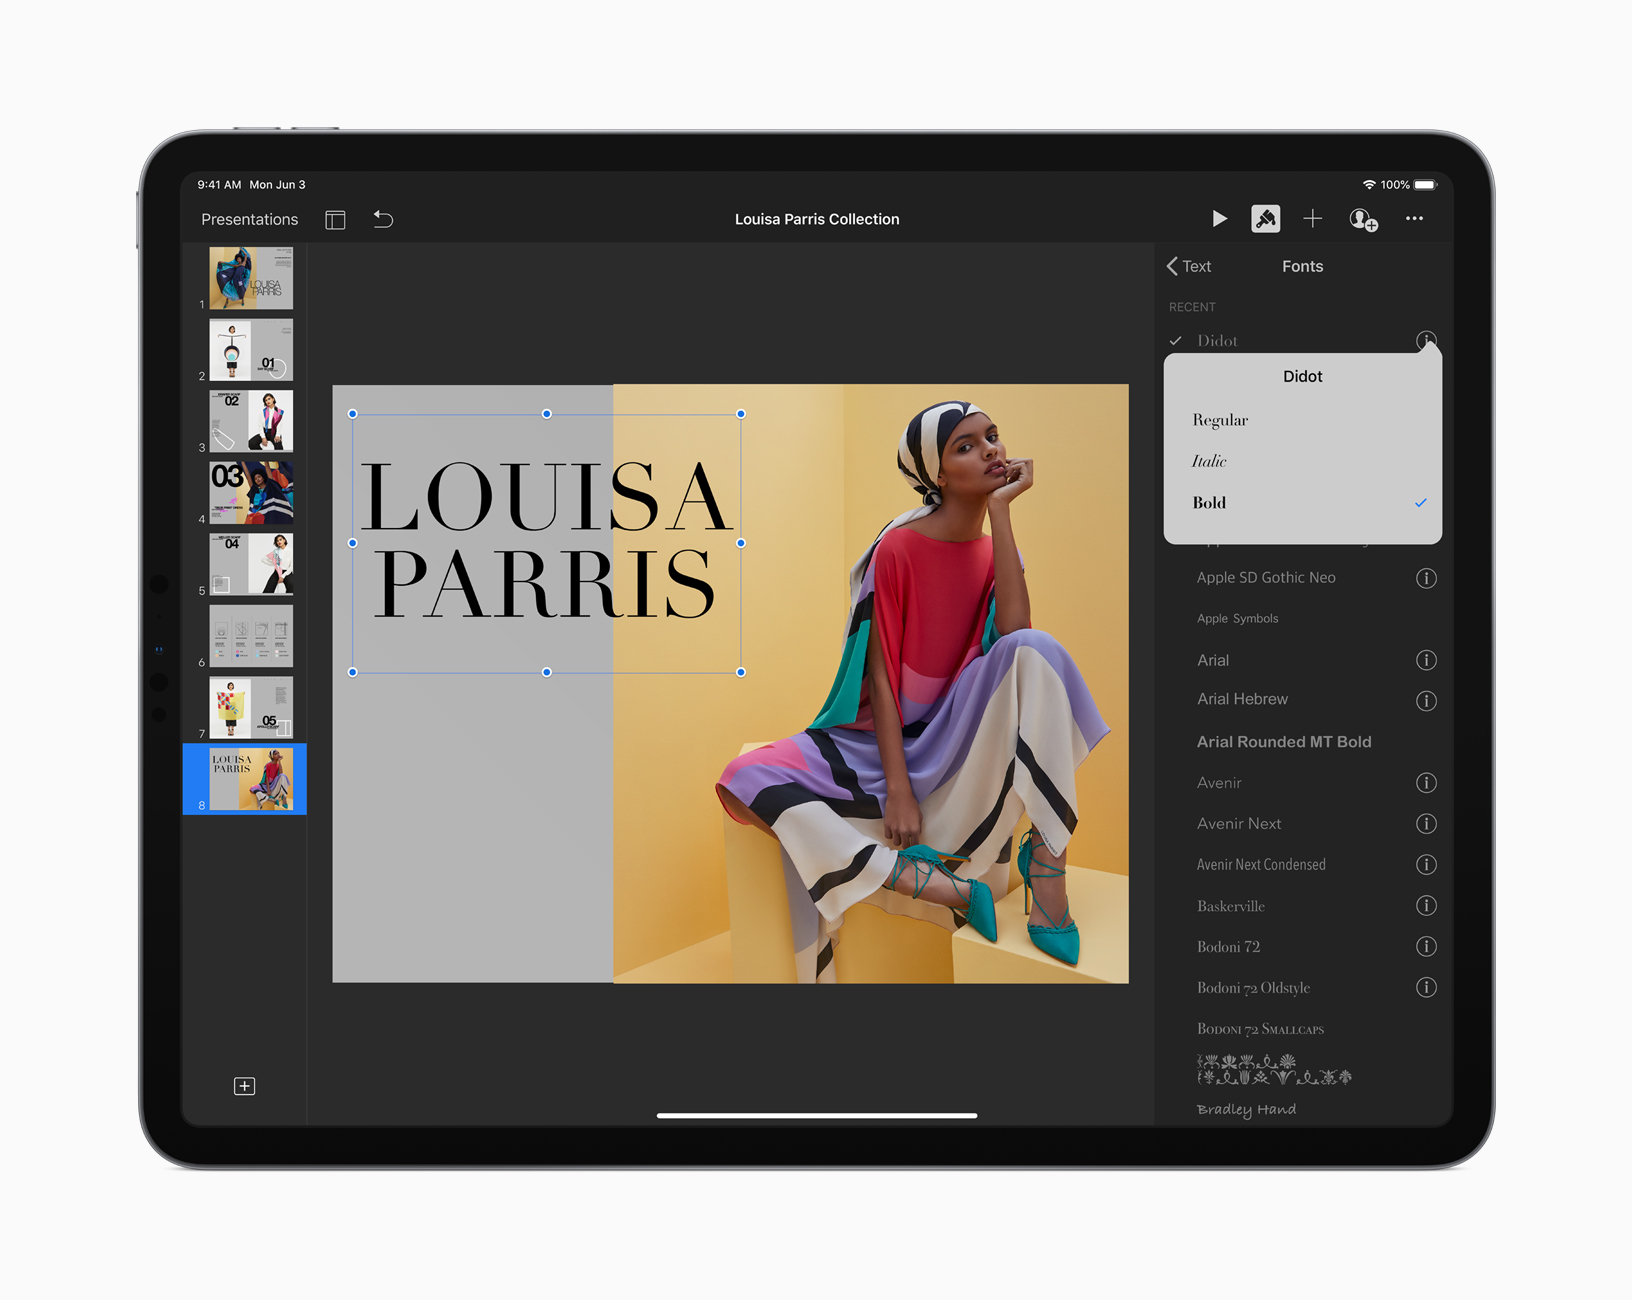 Apple Unveils iPadOS for iPad - New Home Screen, Powerful Multitasking, New Apple Pencil Features, and More